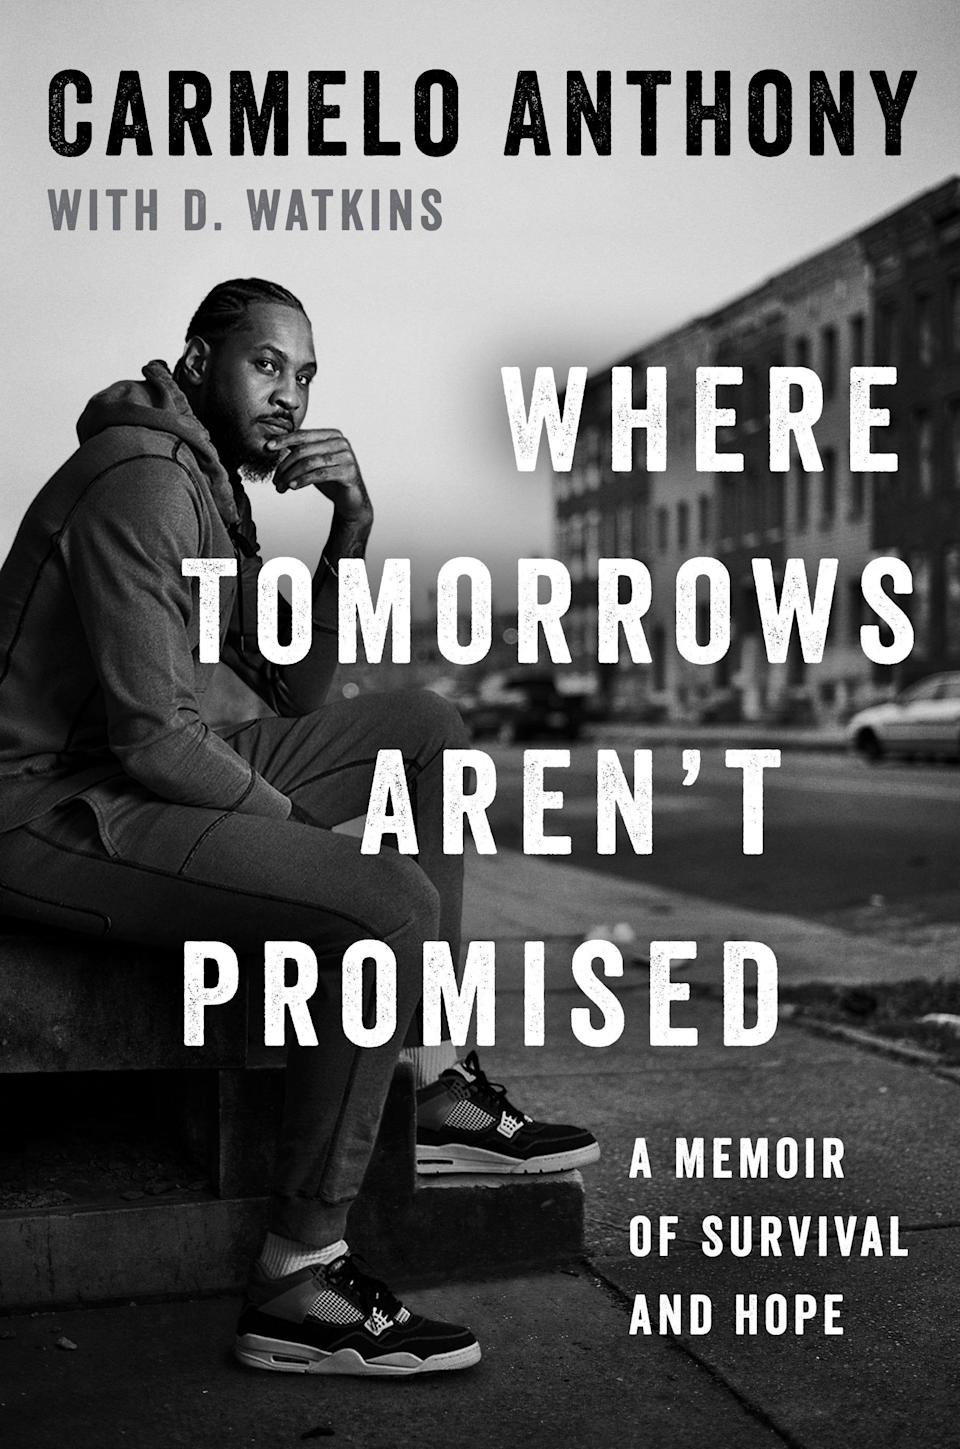 """This cover image released by Gallery Books shows """"Where Tomorrows Aren't Promised: A Memoir of Survival and Hope"""" by Carmelo Anthony with D. Watkins. The book will be released on Sept. 14."""